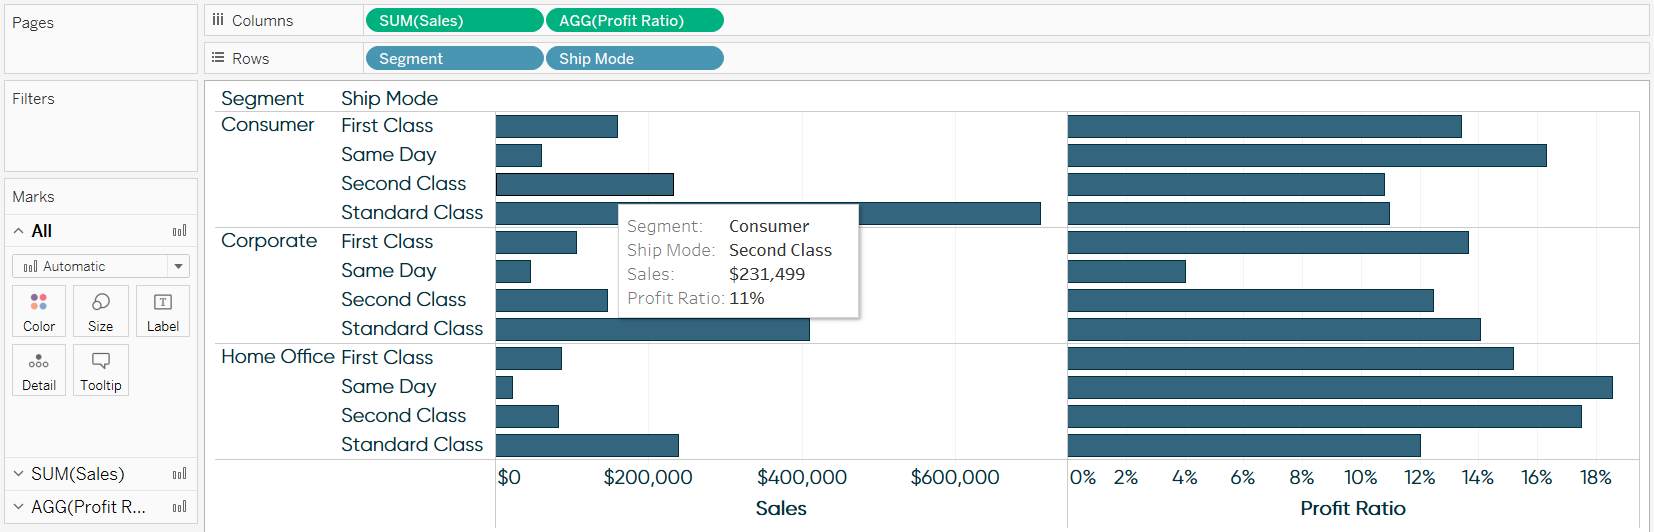 Tableau Sales and Profit Ratio by Segment and Ship Mode Tooltip